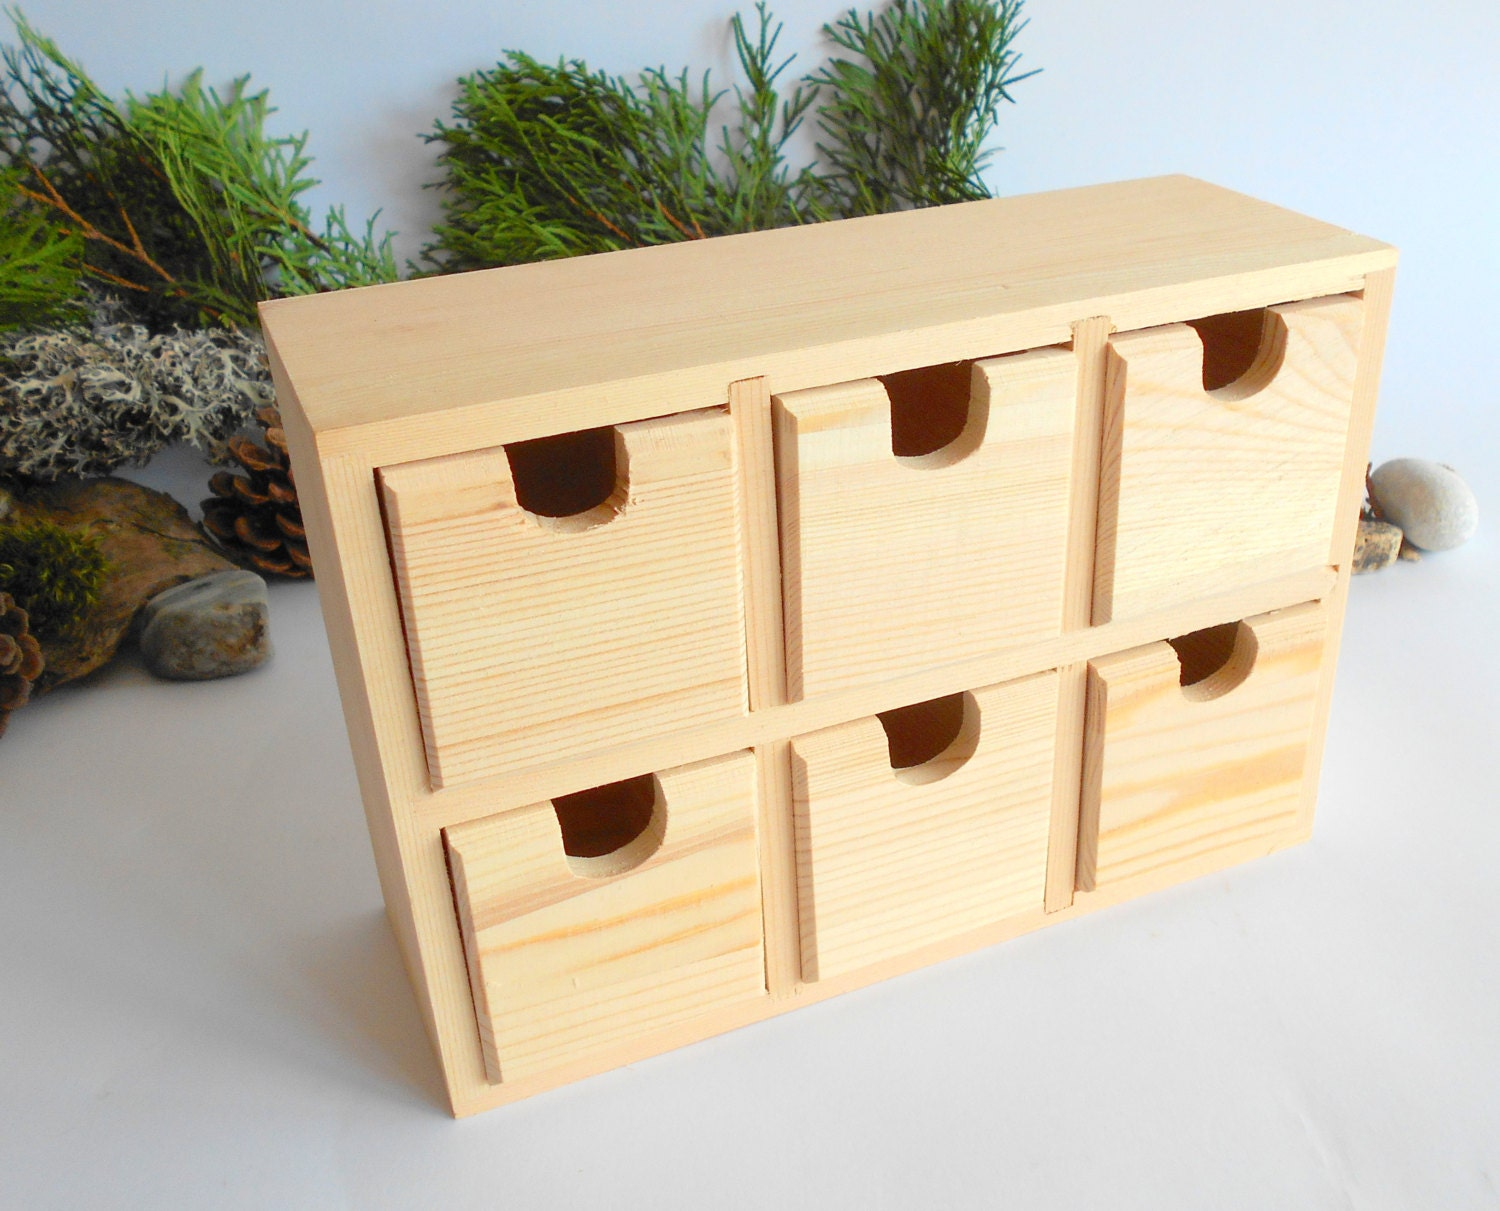 Wooden box with drawers- Wooden desk organizer- Keepsake Jewelry Box -  Apothecary Cabinet - Desktop Organizer- chest of drawers for herbs